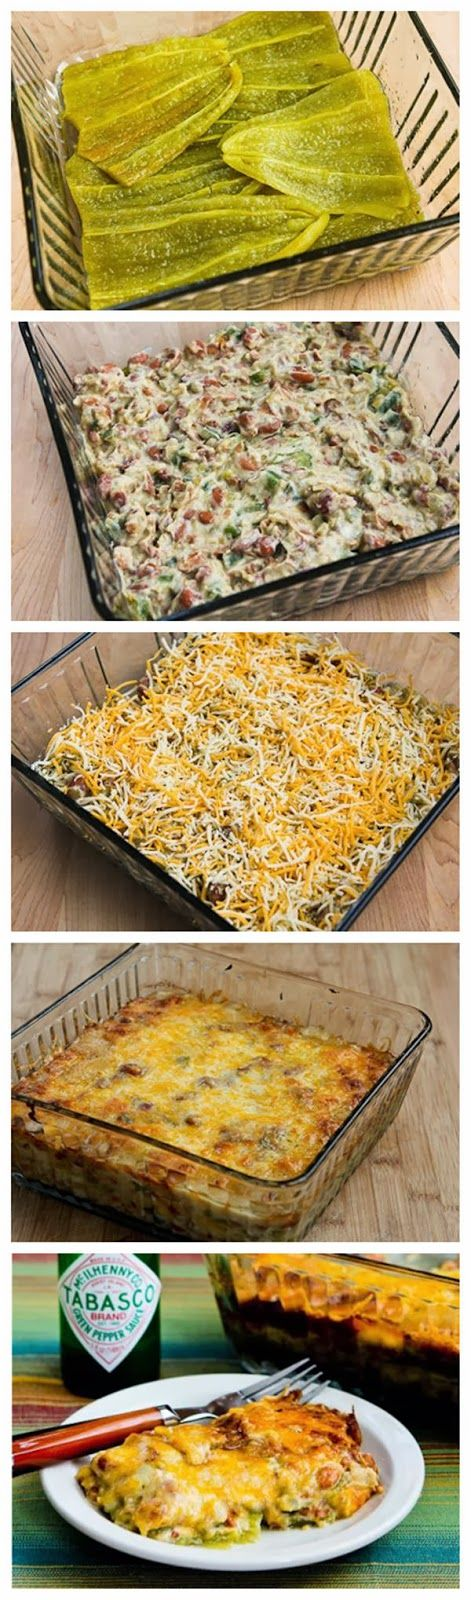 green chile and pinto bean layered mexican casserole more pinto beans ...